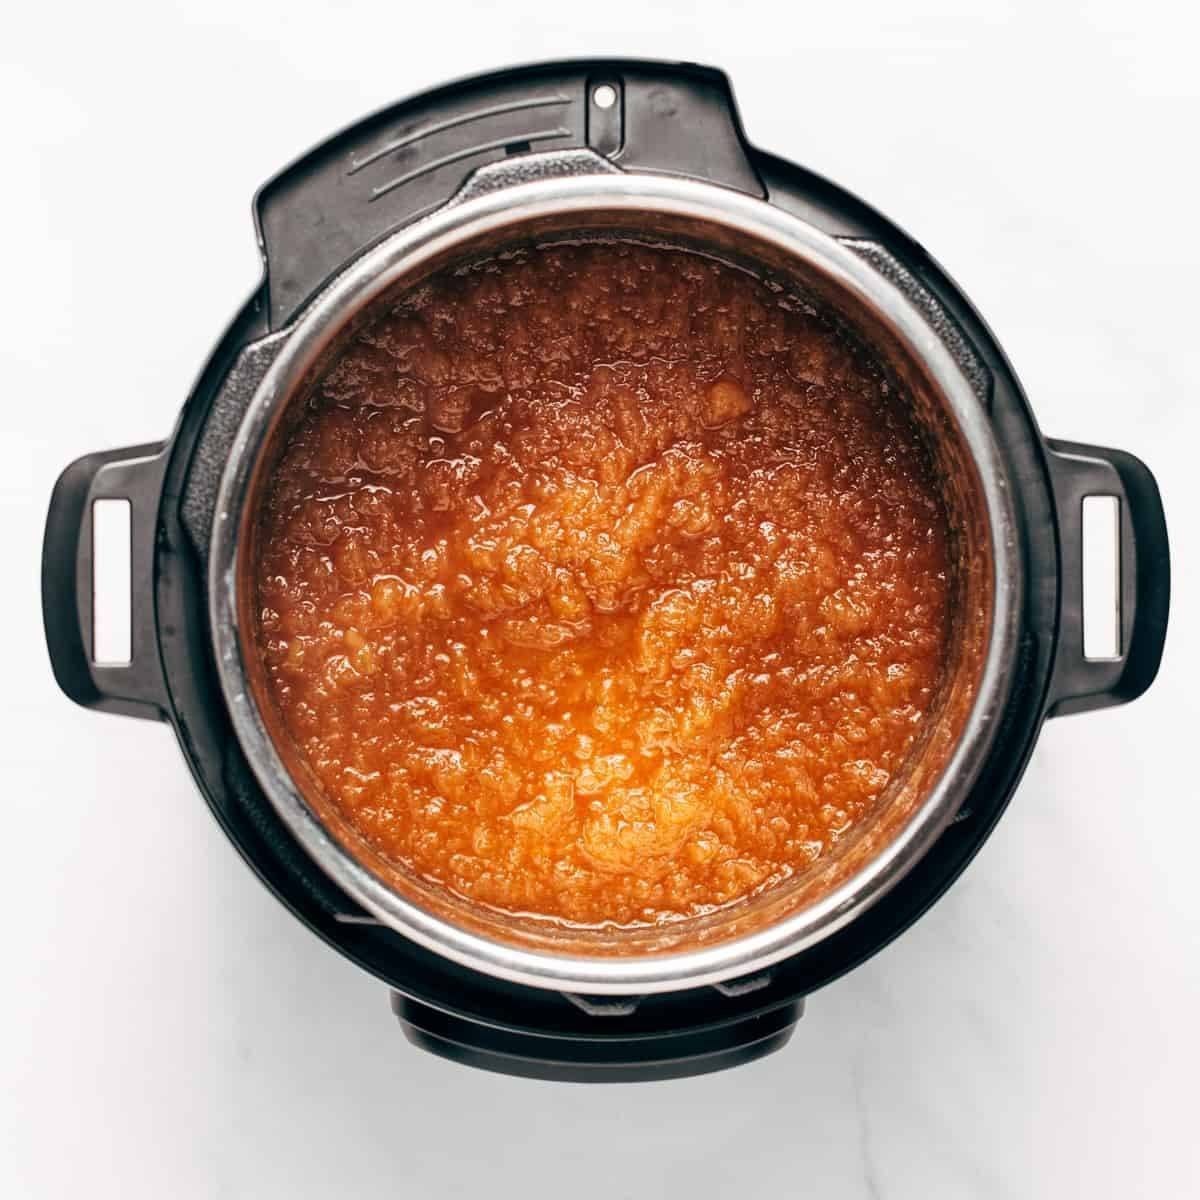 Cooked applesauce in an Instant Pot.